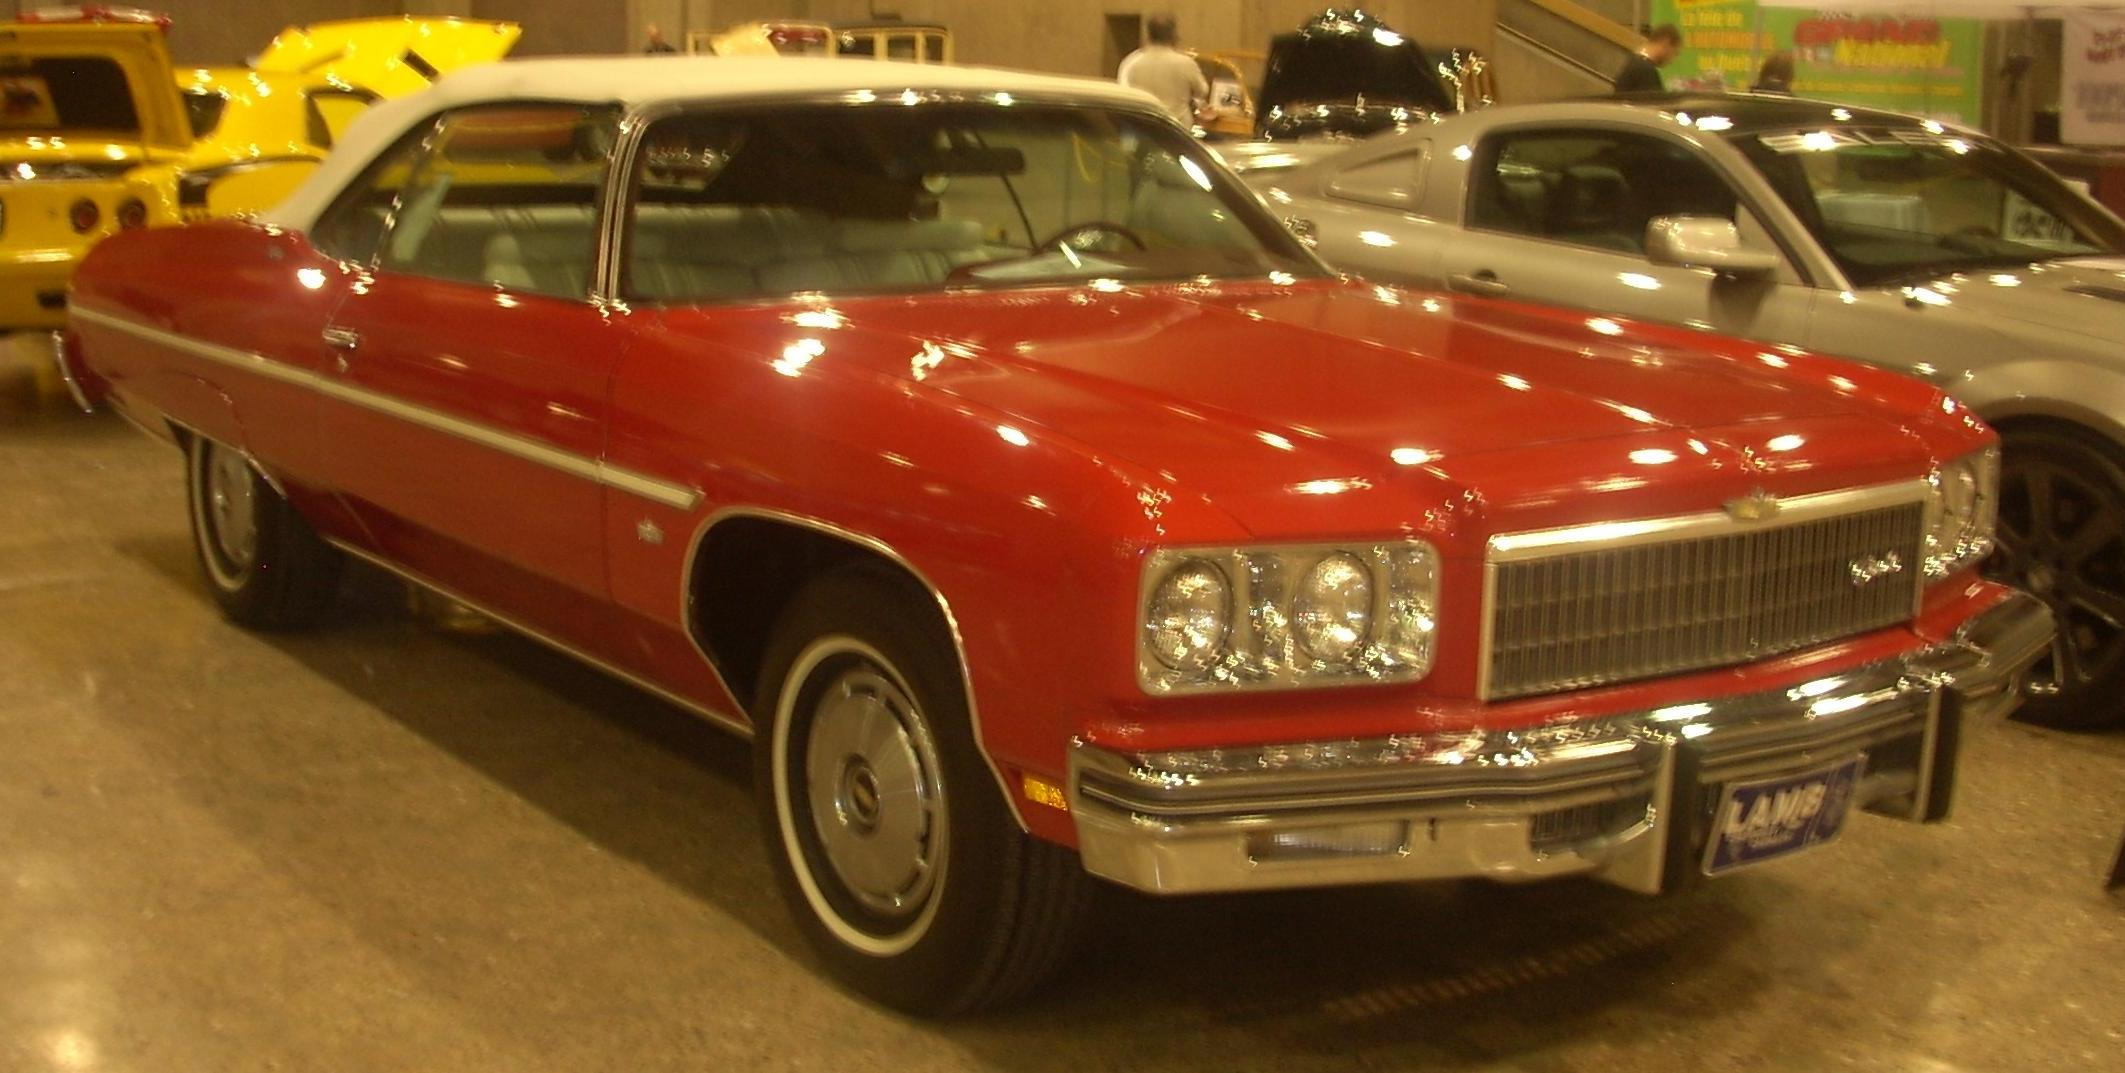 88 1970 Impala For Sale Craigslist 1988